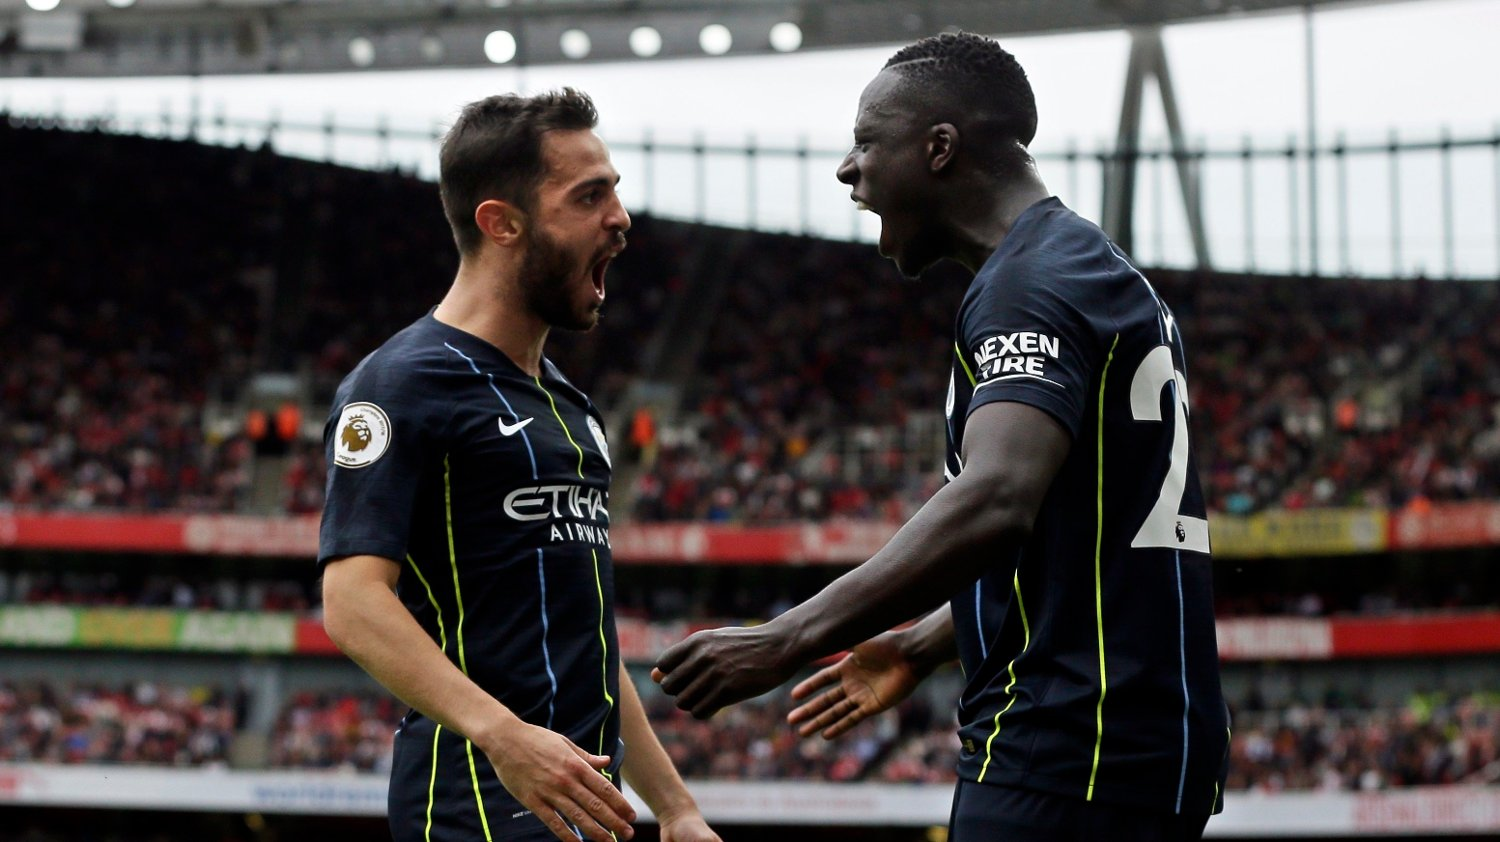 Manchester City's Bernardo Silva celebrates with teammate Benjamin Mendy, right, after scoring his side's second goal during the English Premier League soccer match between Arsenal and Manchester City at the Emirates stadium in London, England, Sunday, Aug. 12, 2018.